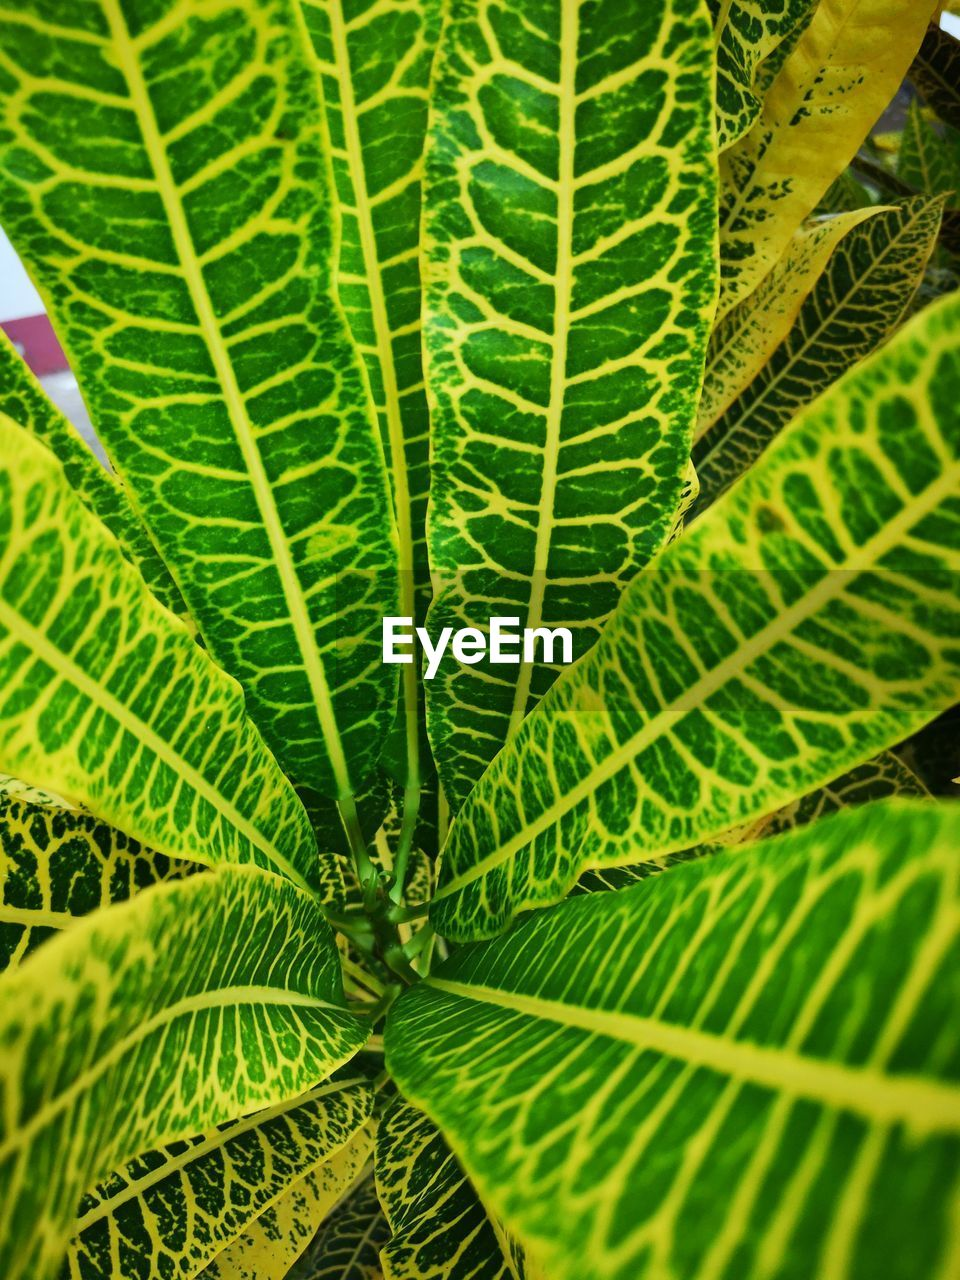 leaf, plant part, green color, plant, growth, nature, beauty in nature, close-up, backgrounds, full frame, no people, day, natural pattern, leaf vein, freshness, botany, outdoors, sunlight, fern, selective focus, leaves, palm leaf